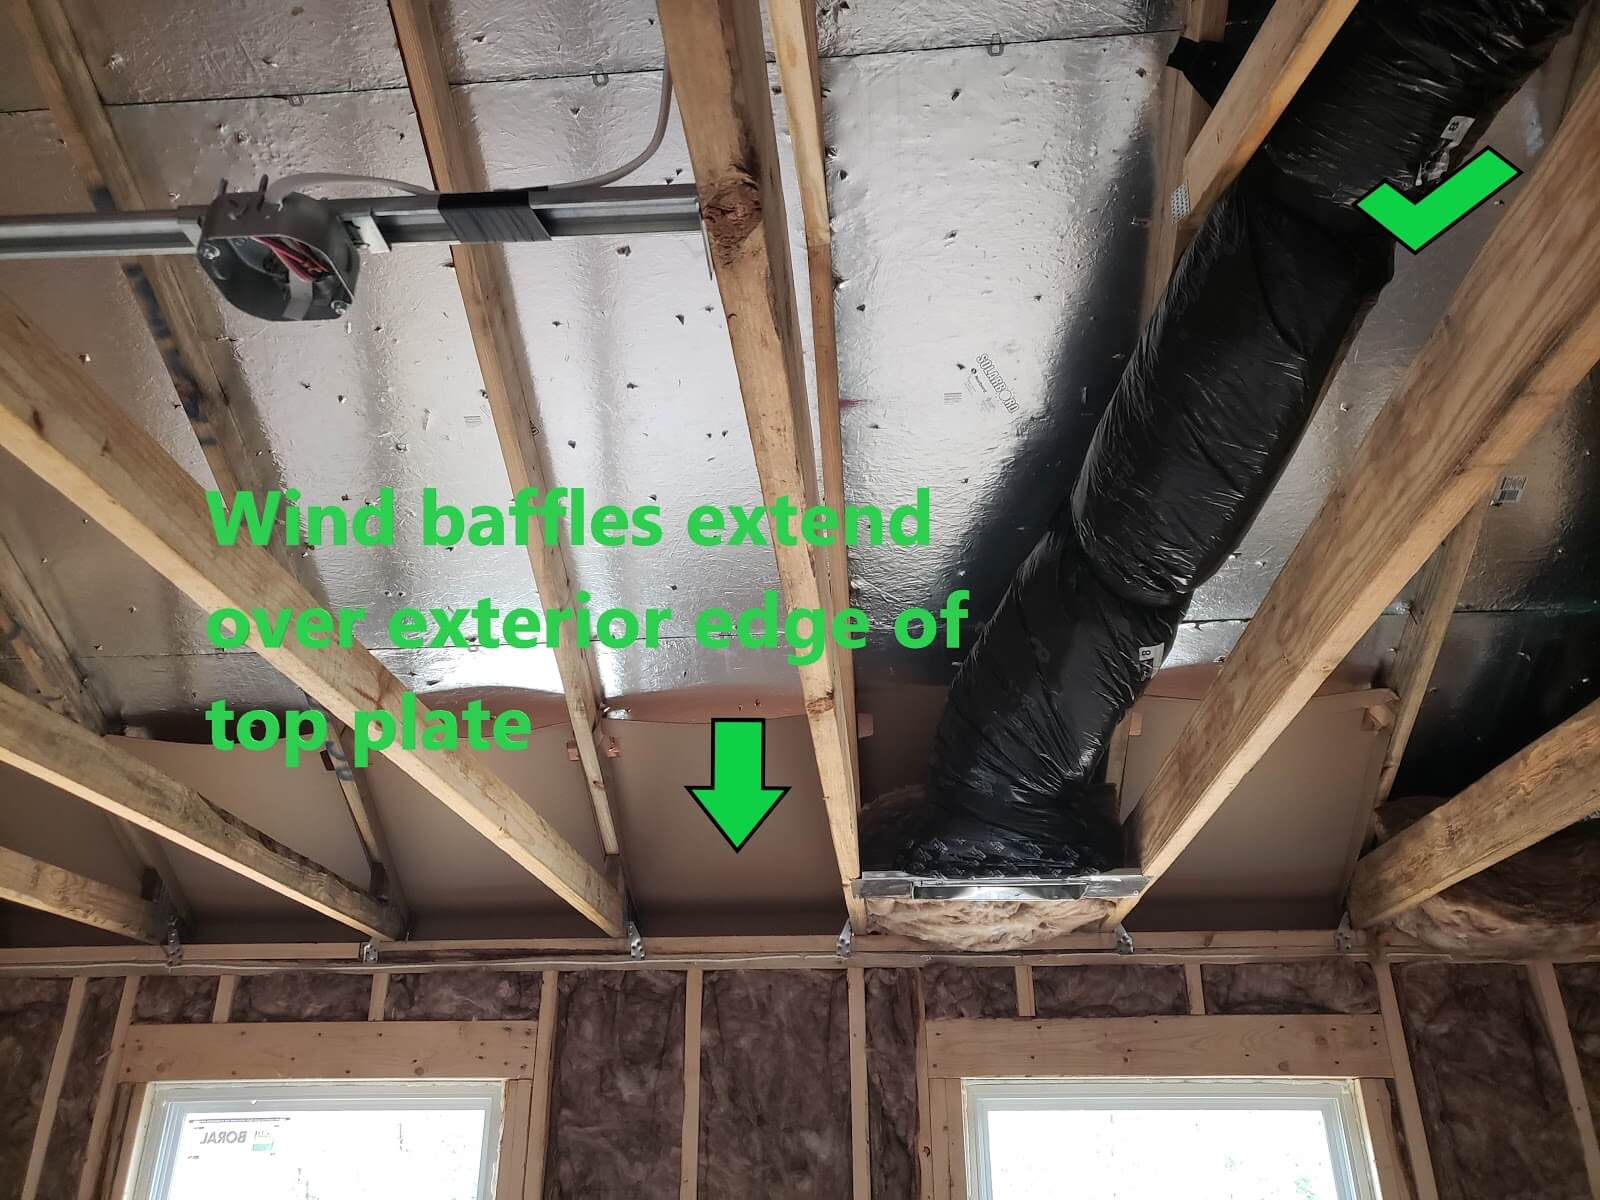 Wind baffles that are correctly installed extending over the exterior edge of the top plate